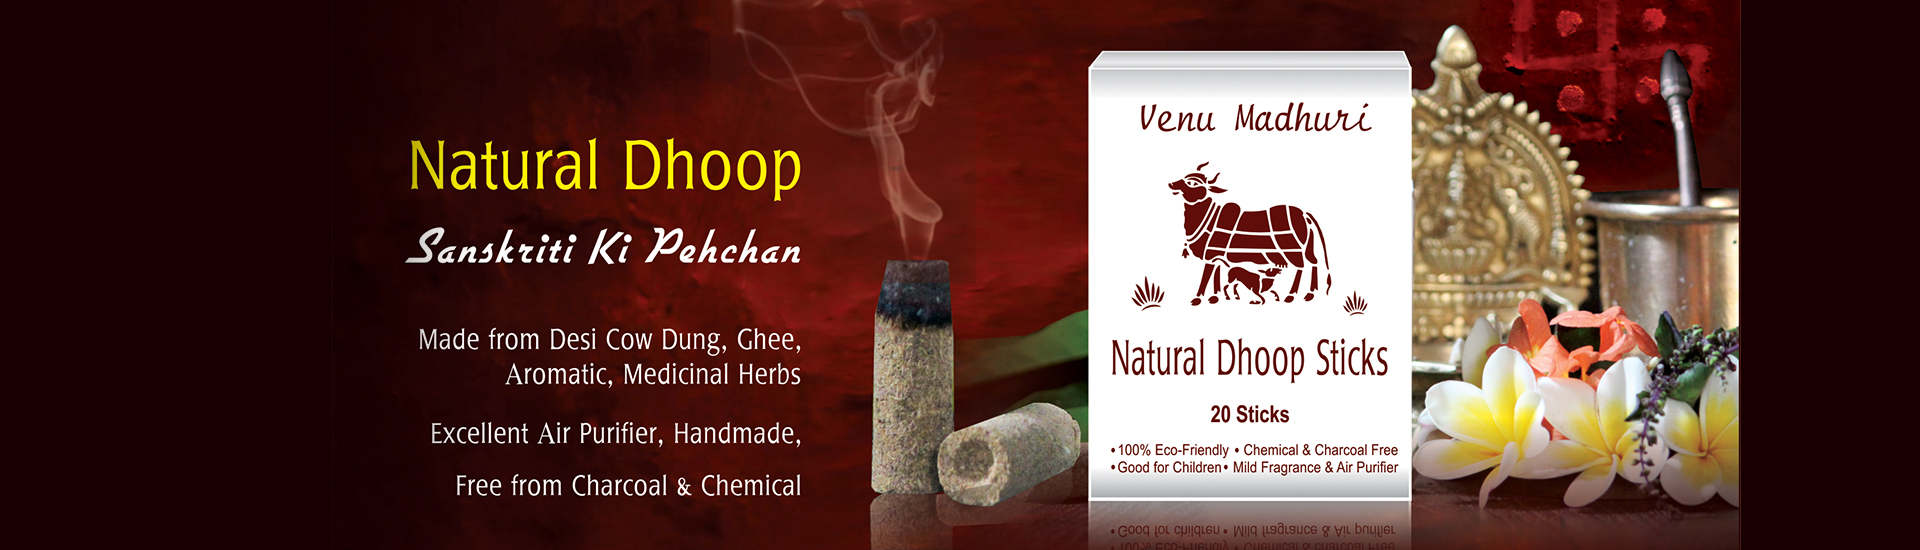 Natural Dhoop